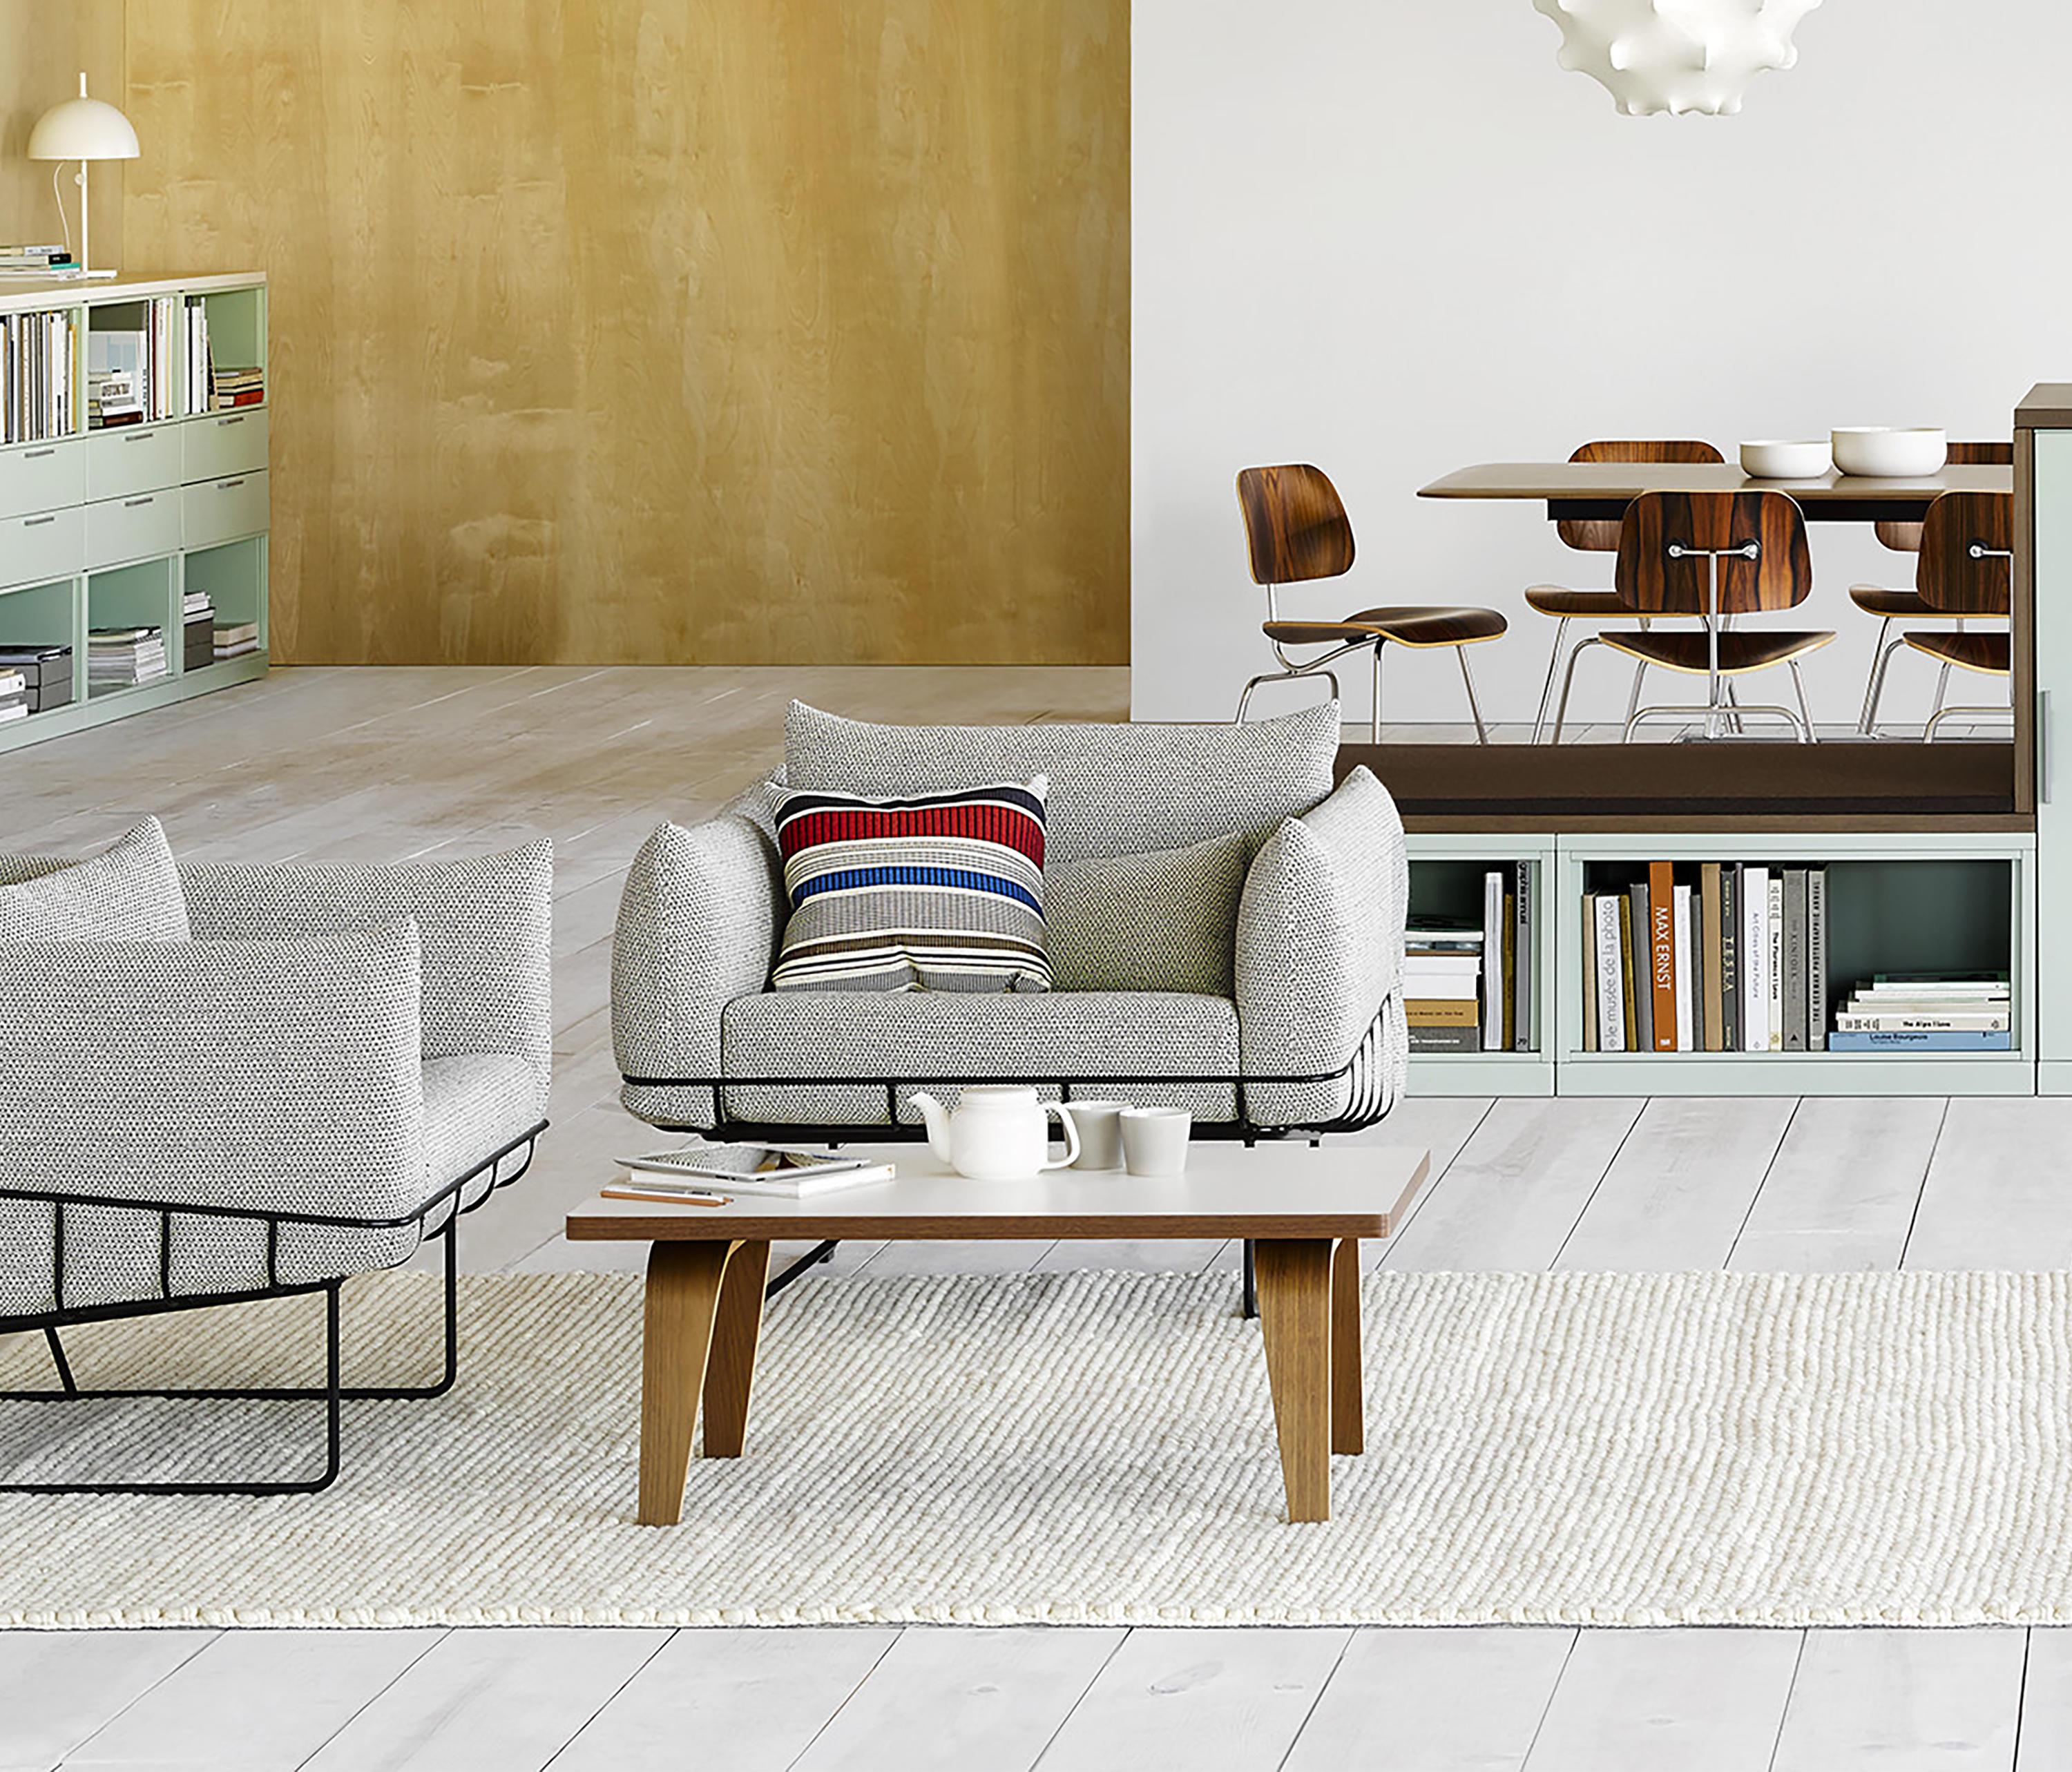 ... Eames Molded Plywood Coffee Table Wood Base By Herman Miller